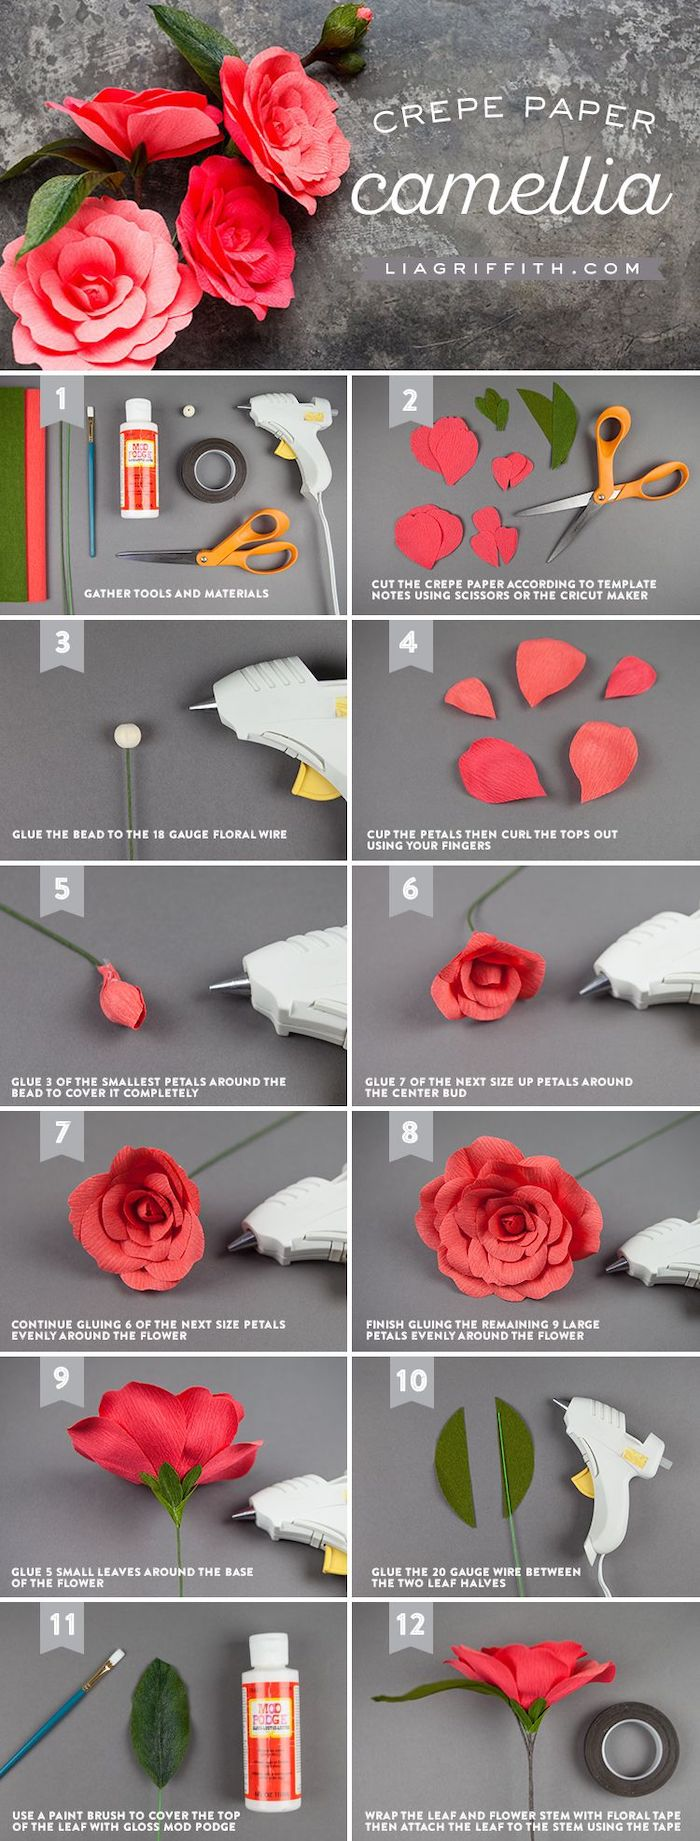 how to make flowers out of paper, how to make camellia flower out of crepe paper, photo collage of step by step diy tutorial